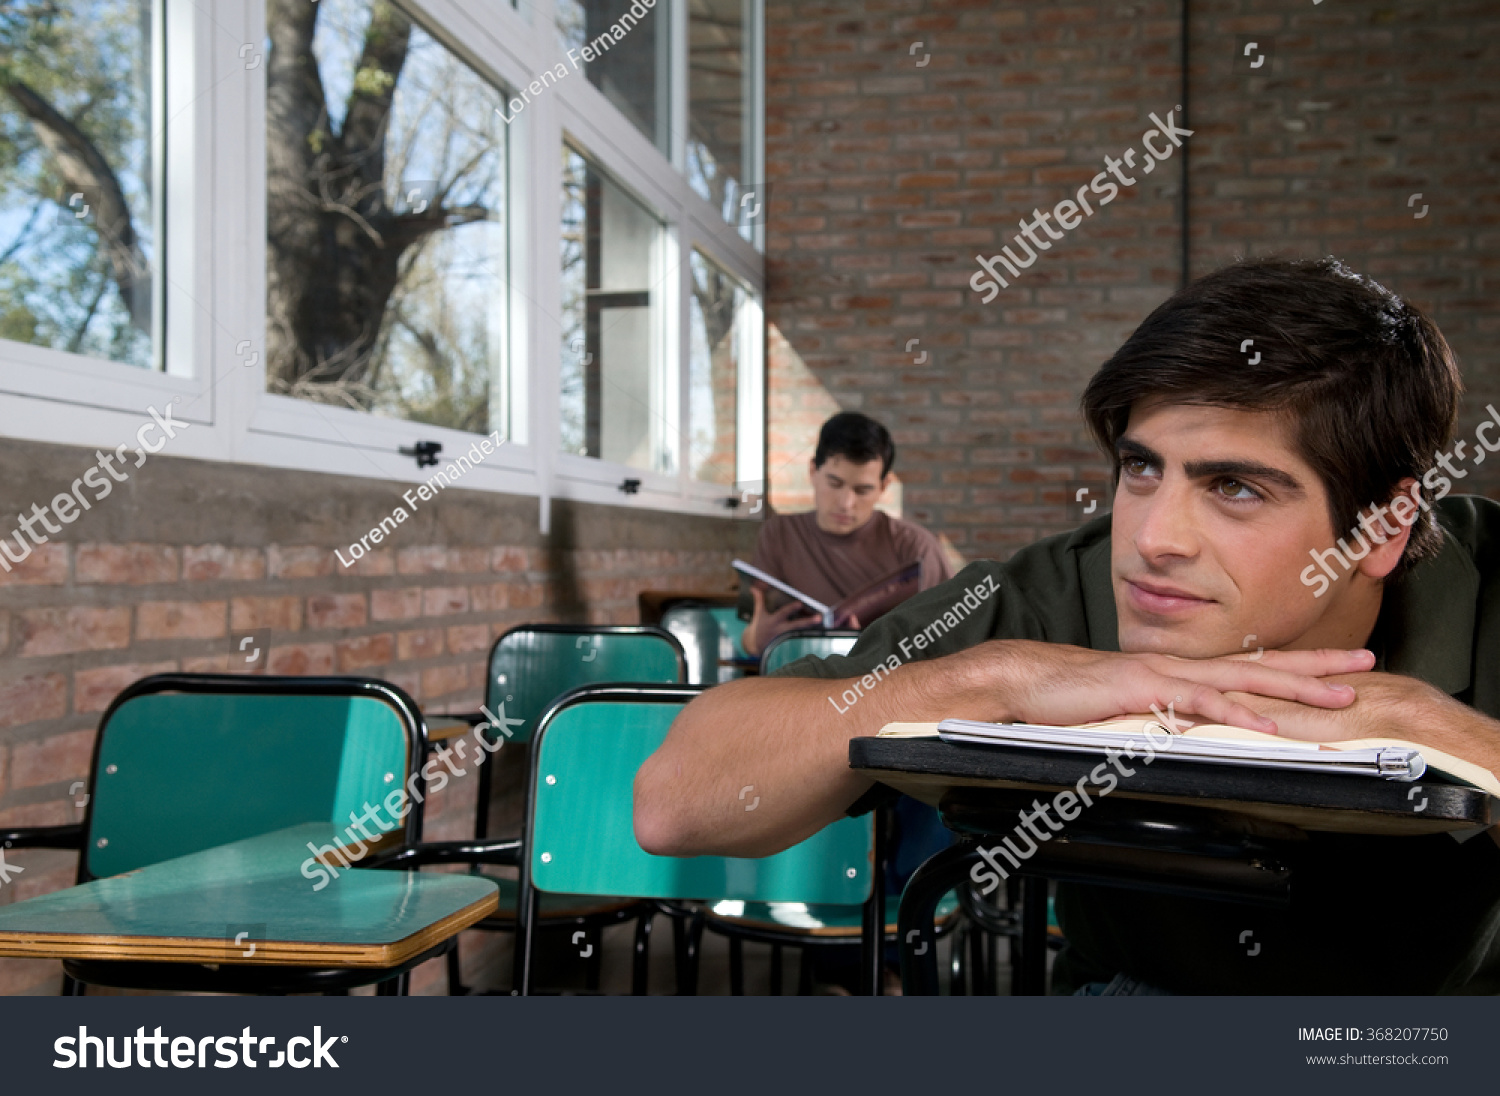 Student Yawning On The Class Stock Photo 368207750 ...